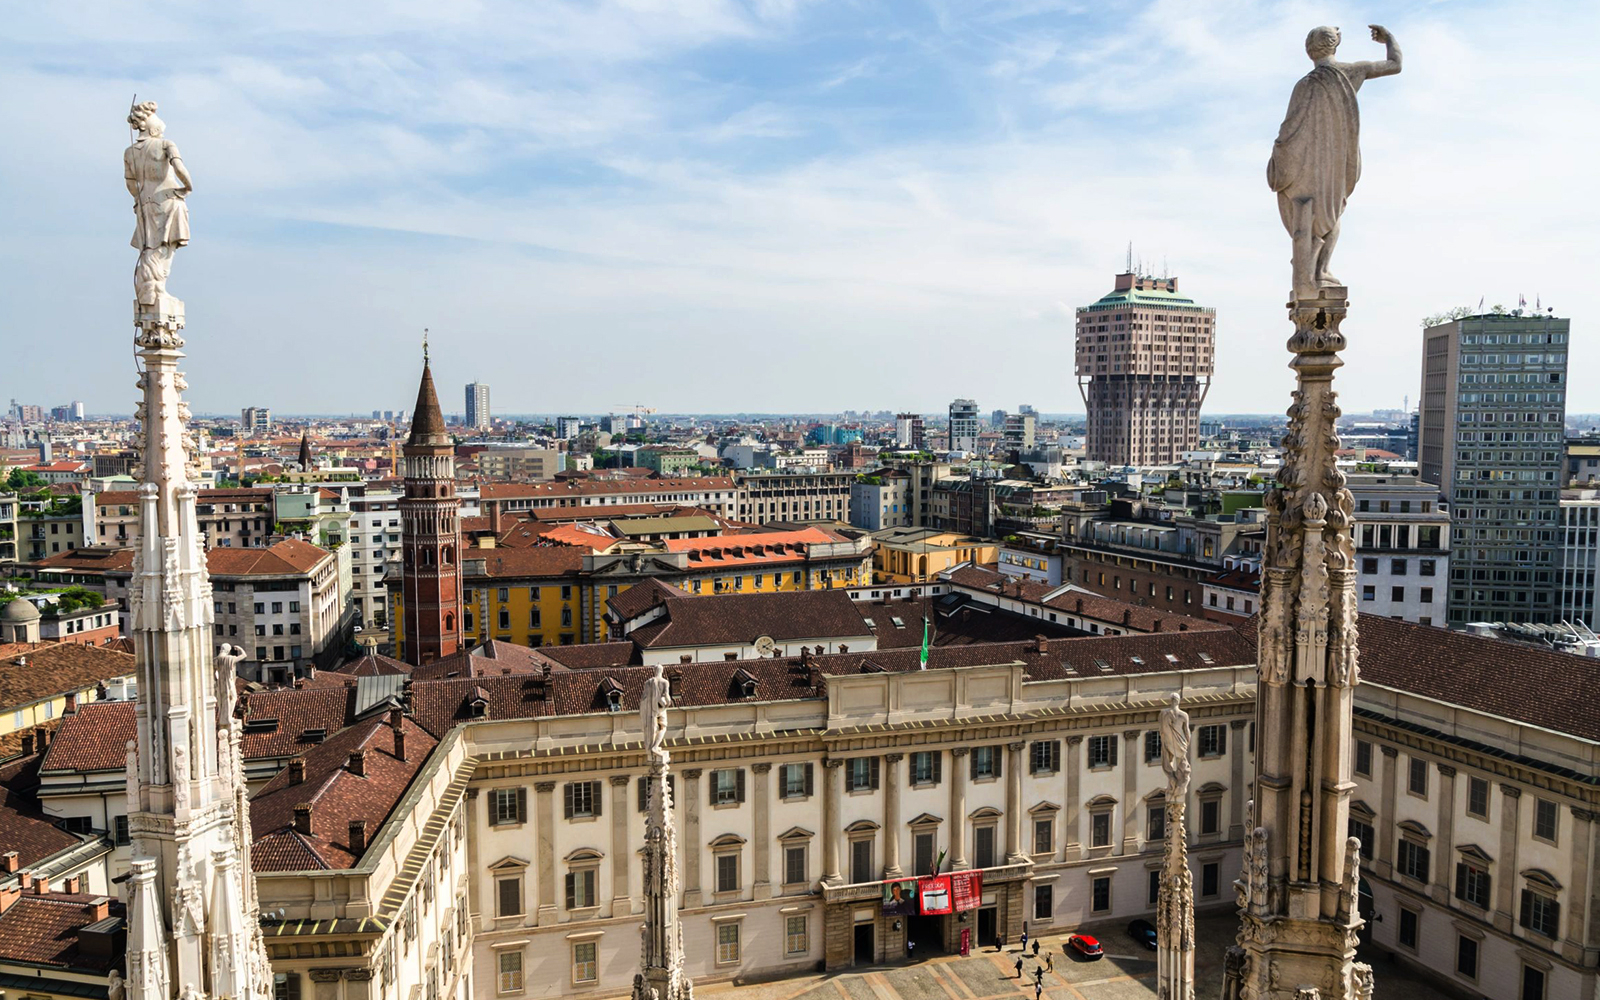 B90aed7d 30be 47c7 8a93 11fed0135370 8907 milan guided tour of the duomo cathedral with optional rooftop access and tour 02